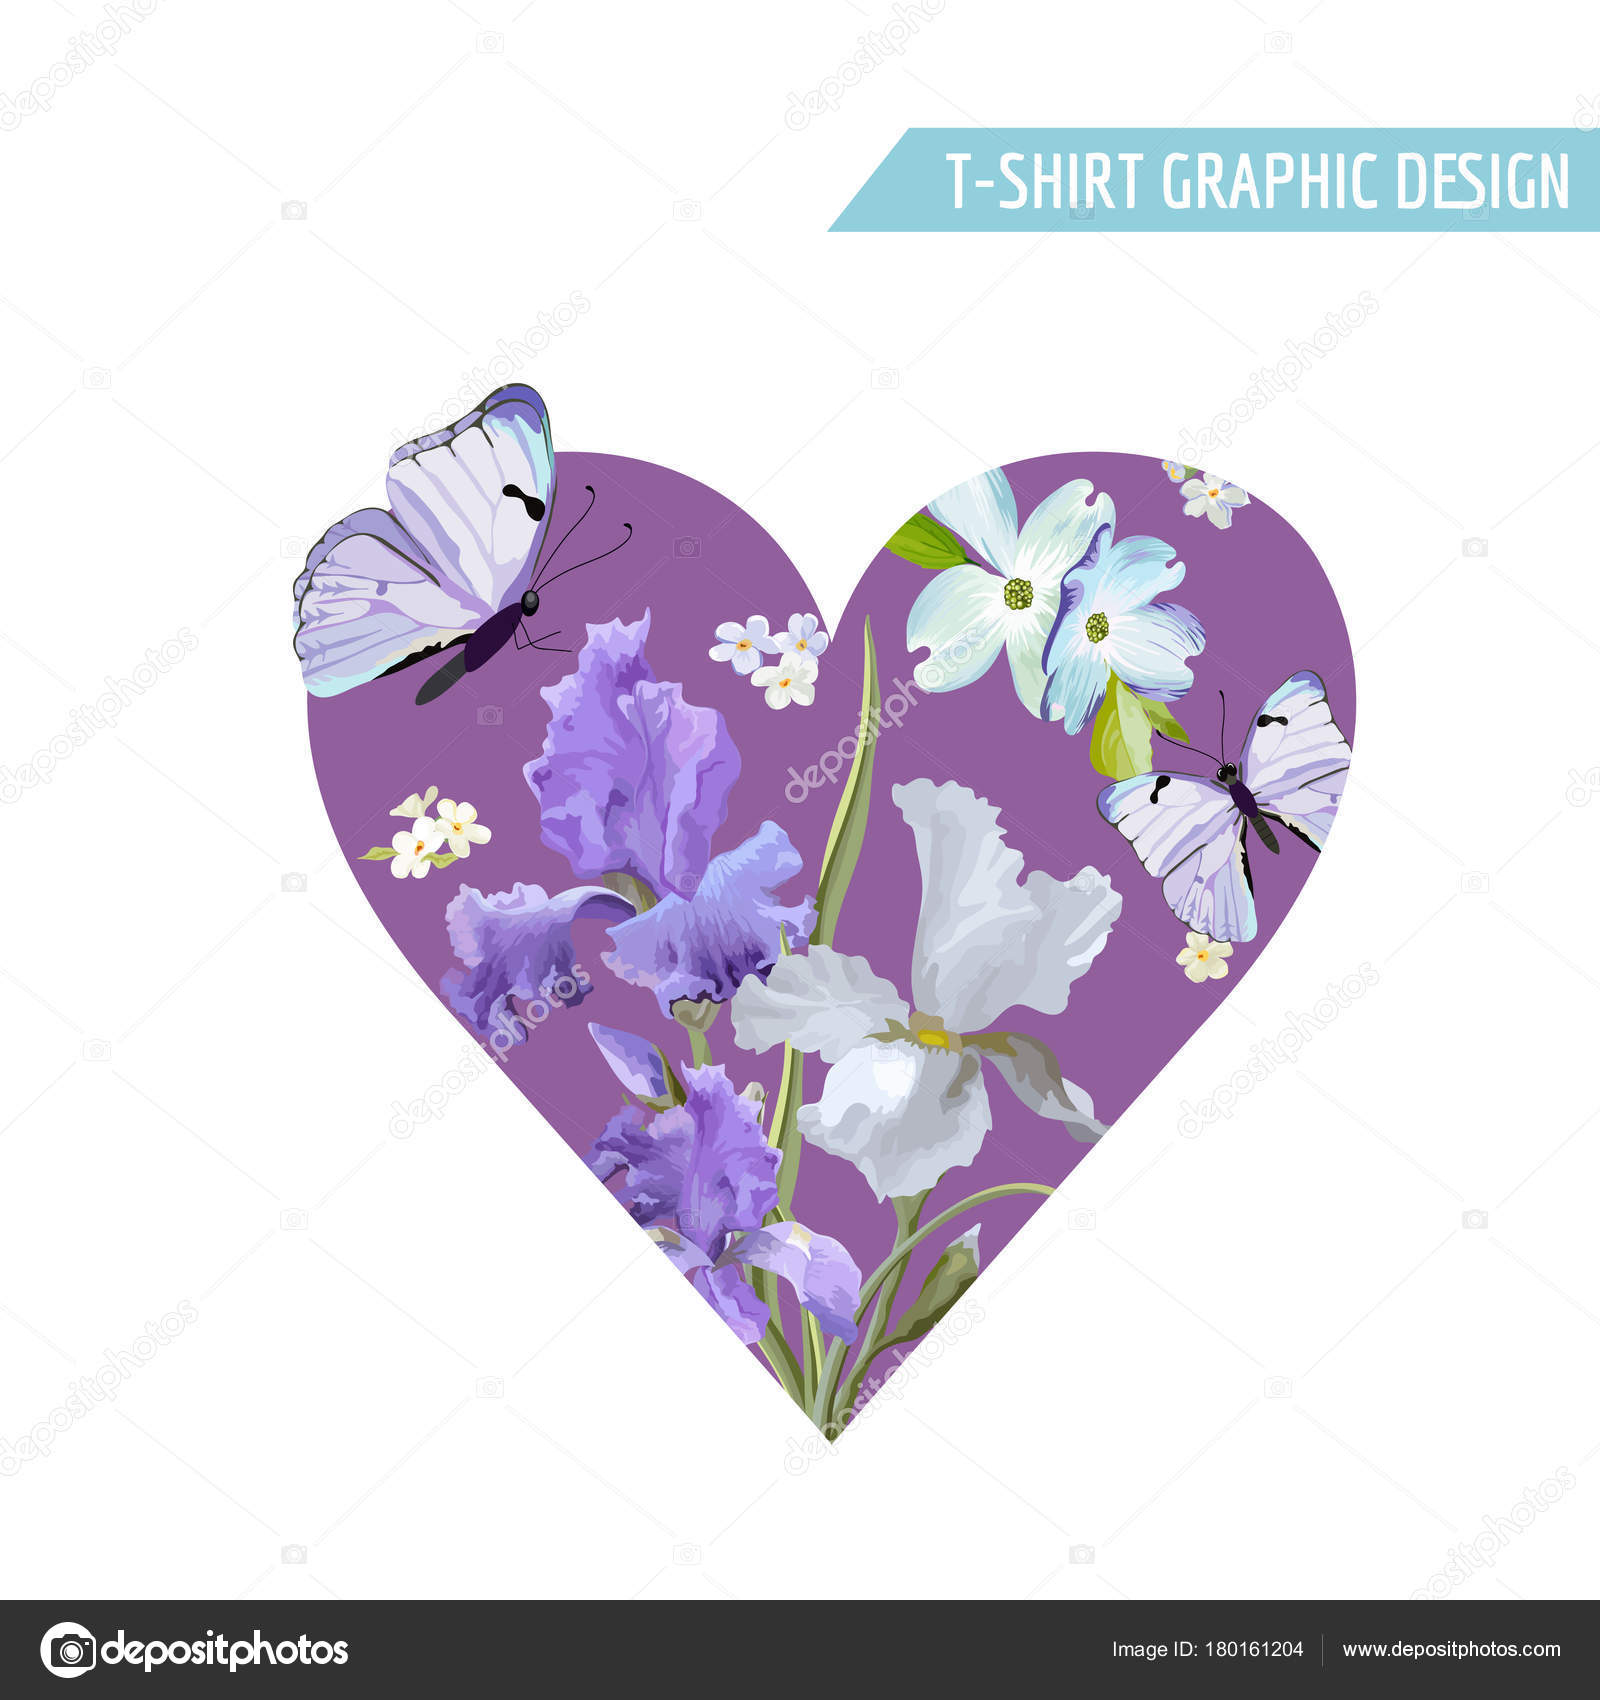 Romantic Love T Shirt Design With Blooming Iris Flowers And